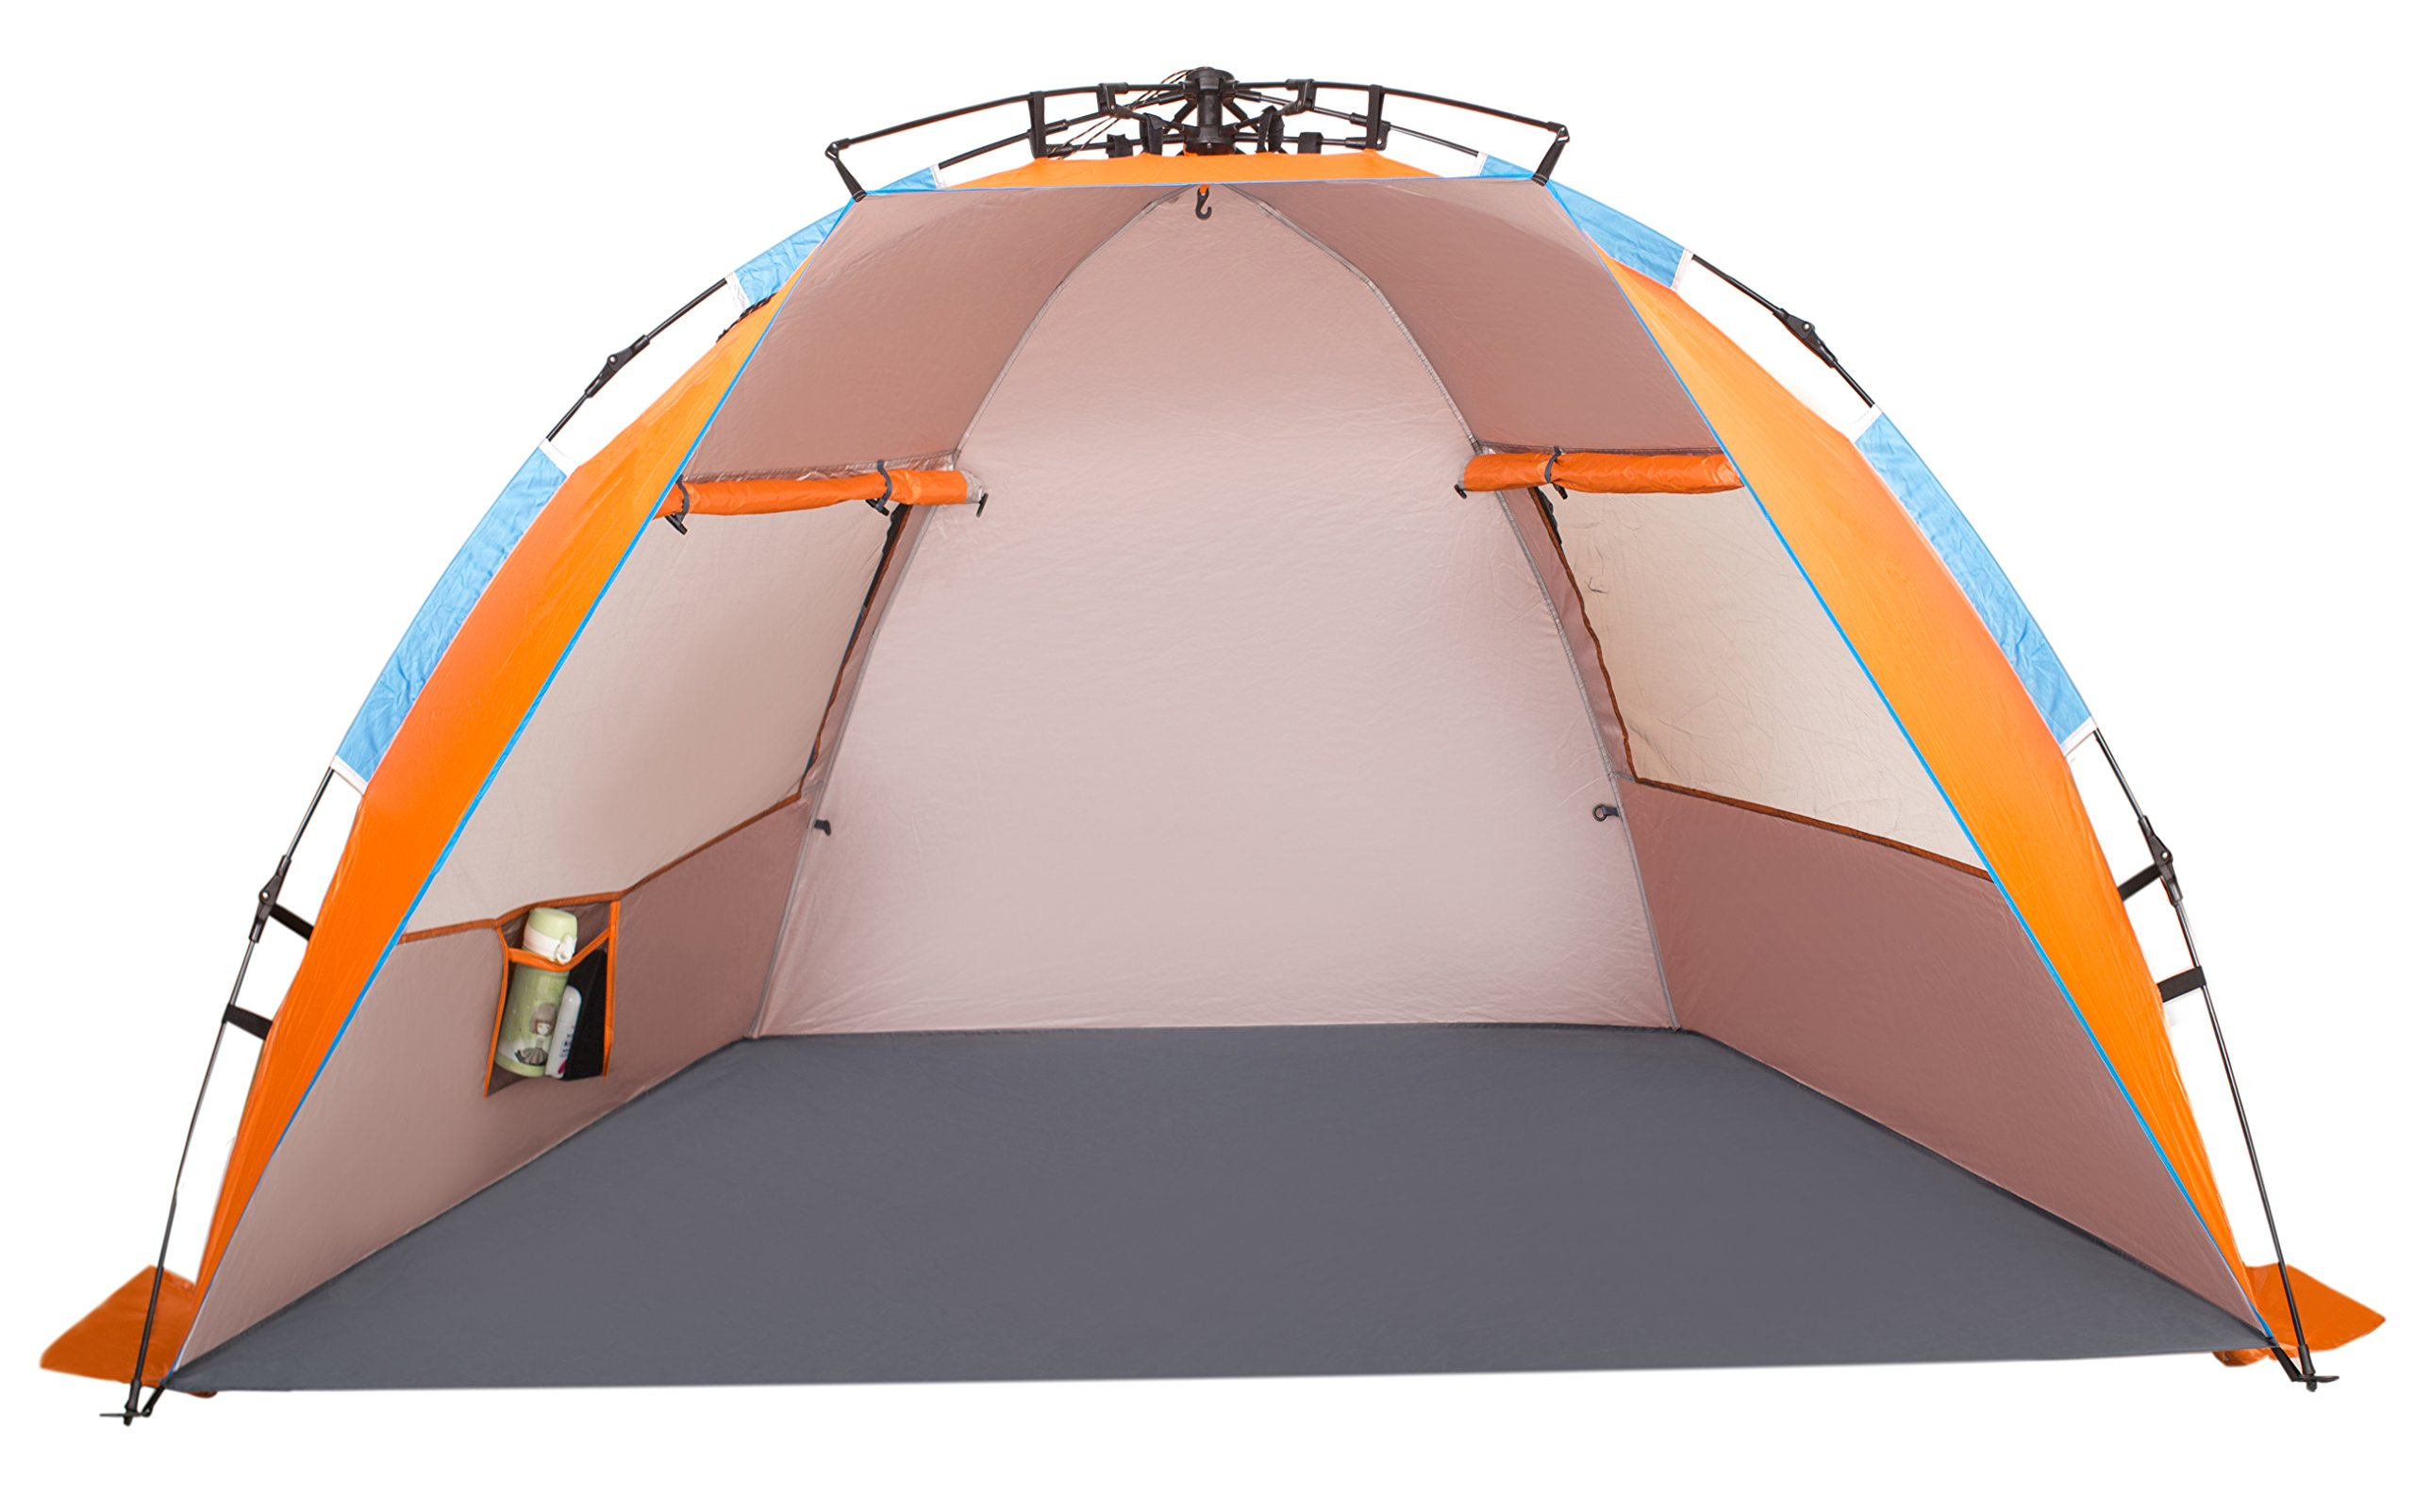 Oileus X-Large 4 Person Beach Tent Sun Shelter - Portable Sun Shade Instant Tent for Beach with Carrying Bag Stakes 6 Sand Pockets Anti UV for Fishing ...  sc 1 st  Amazon.com & Best half dome tents for beach | Amazon.com